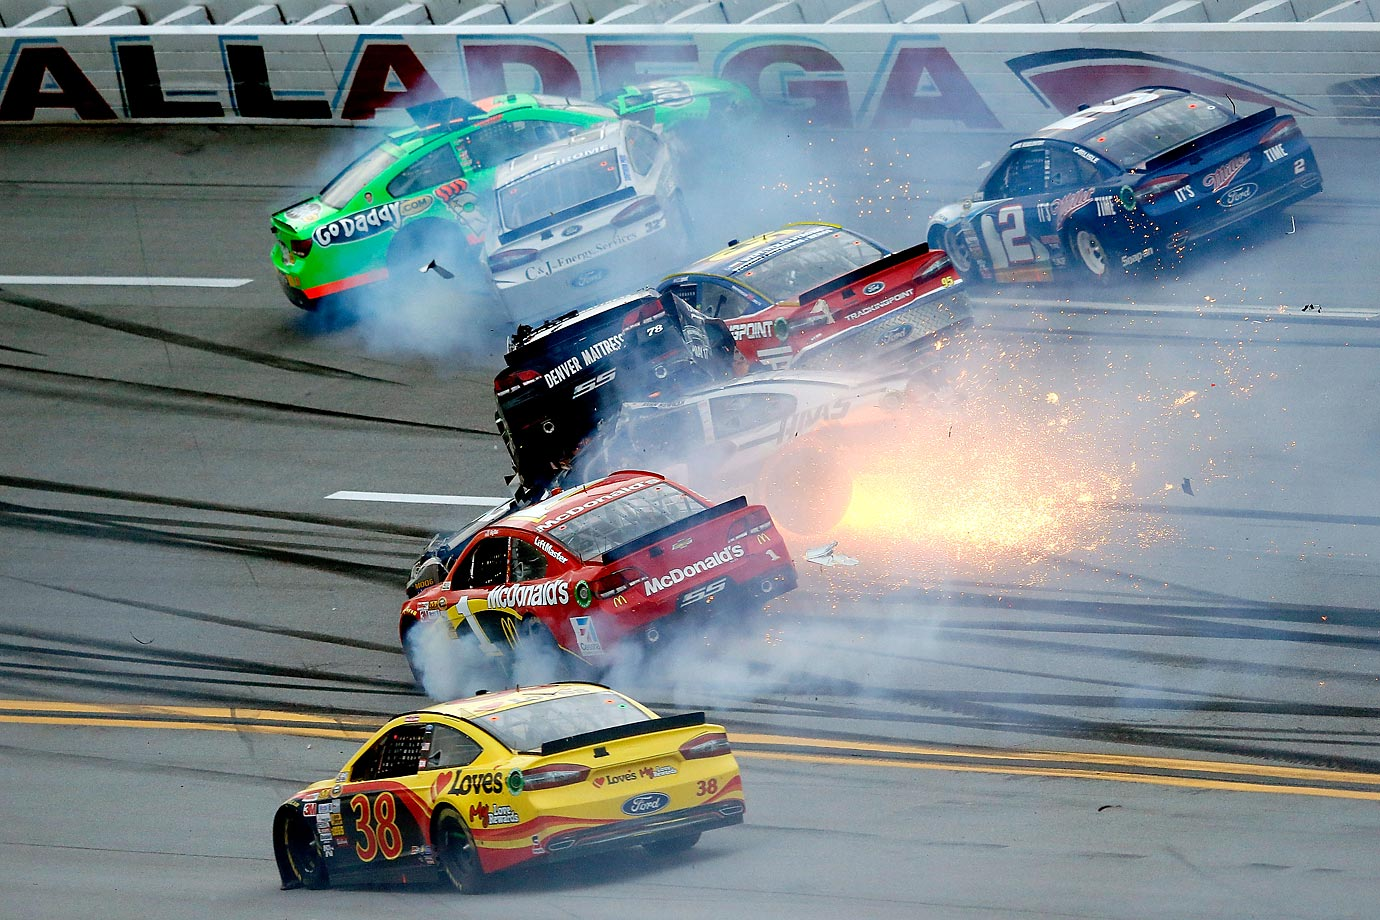 The leaders were running in a large pack heading into Turn 1 when Kyle Busch, charging up through the middle groove, hit the rear of Kasey Kahne's No. 5 car. The contact turned Kahne into the outside wall and set-off a chain reaction that involved 16 cars. Was a 16-car pileup. Later Kurt Busch was involved in a large wreck going into turn three in the final laps of the race that involved  12 cars.